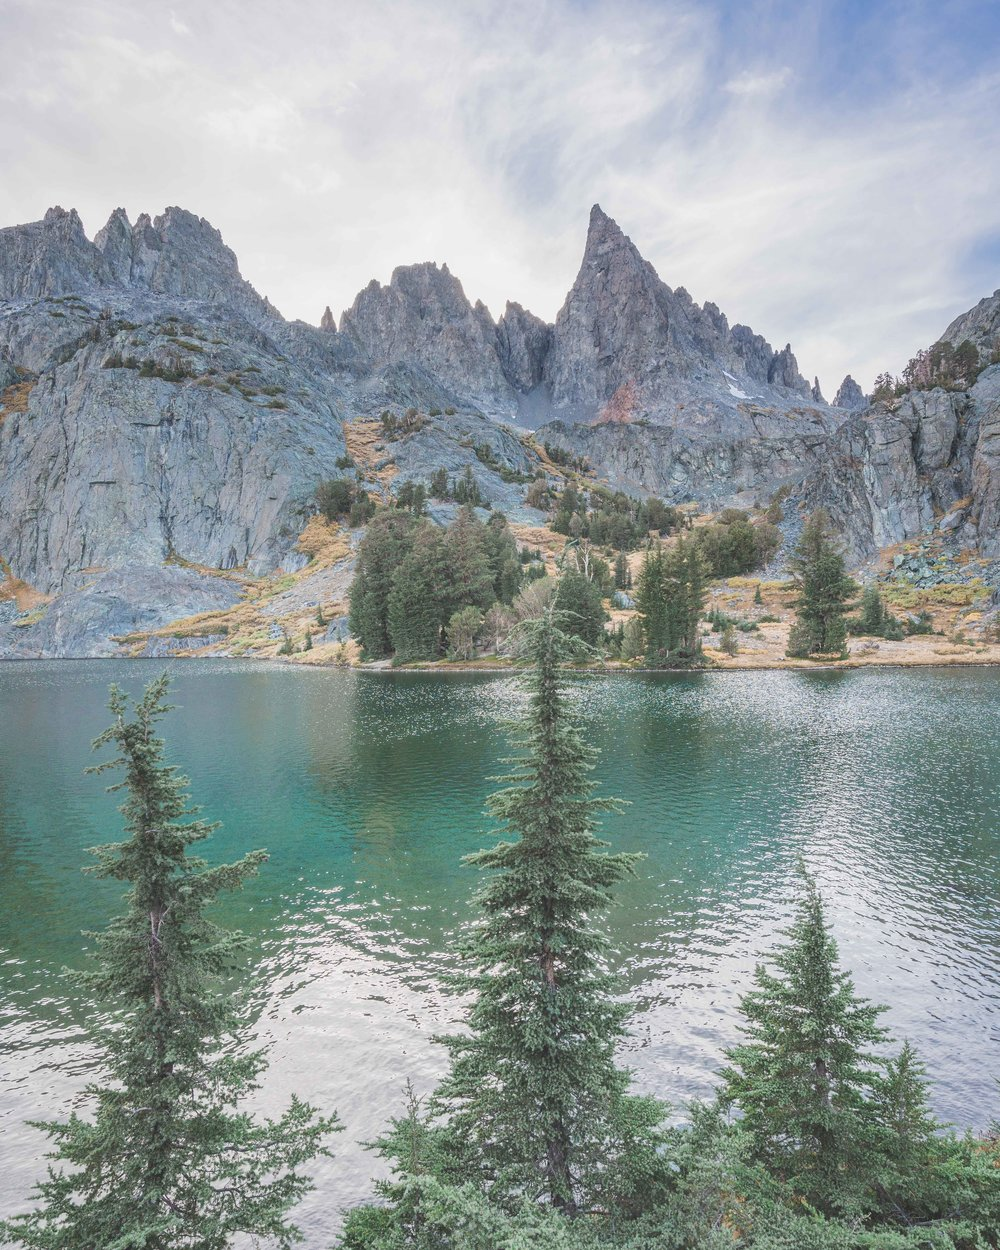 minaret lake, clyde minaret, eastern sierras, mammoth lakes, best, hikes, camping, ritter range, rock climbing, things to do, wilderness, permit, backcountry, inyo, national forest, minaret creek, devils postpile, ranger station, california mountain, photography sony, a7riii, a7r3, mirrorless, landscape, outdoor, adventure, water, lake, 3 trees, symmetry